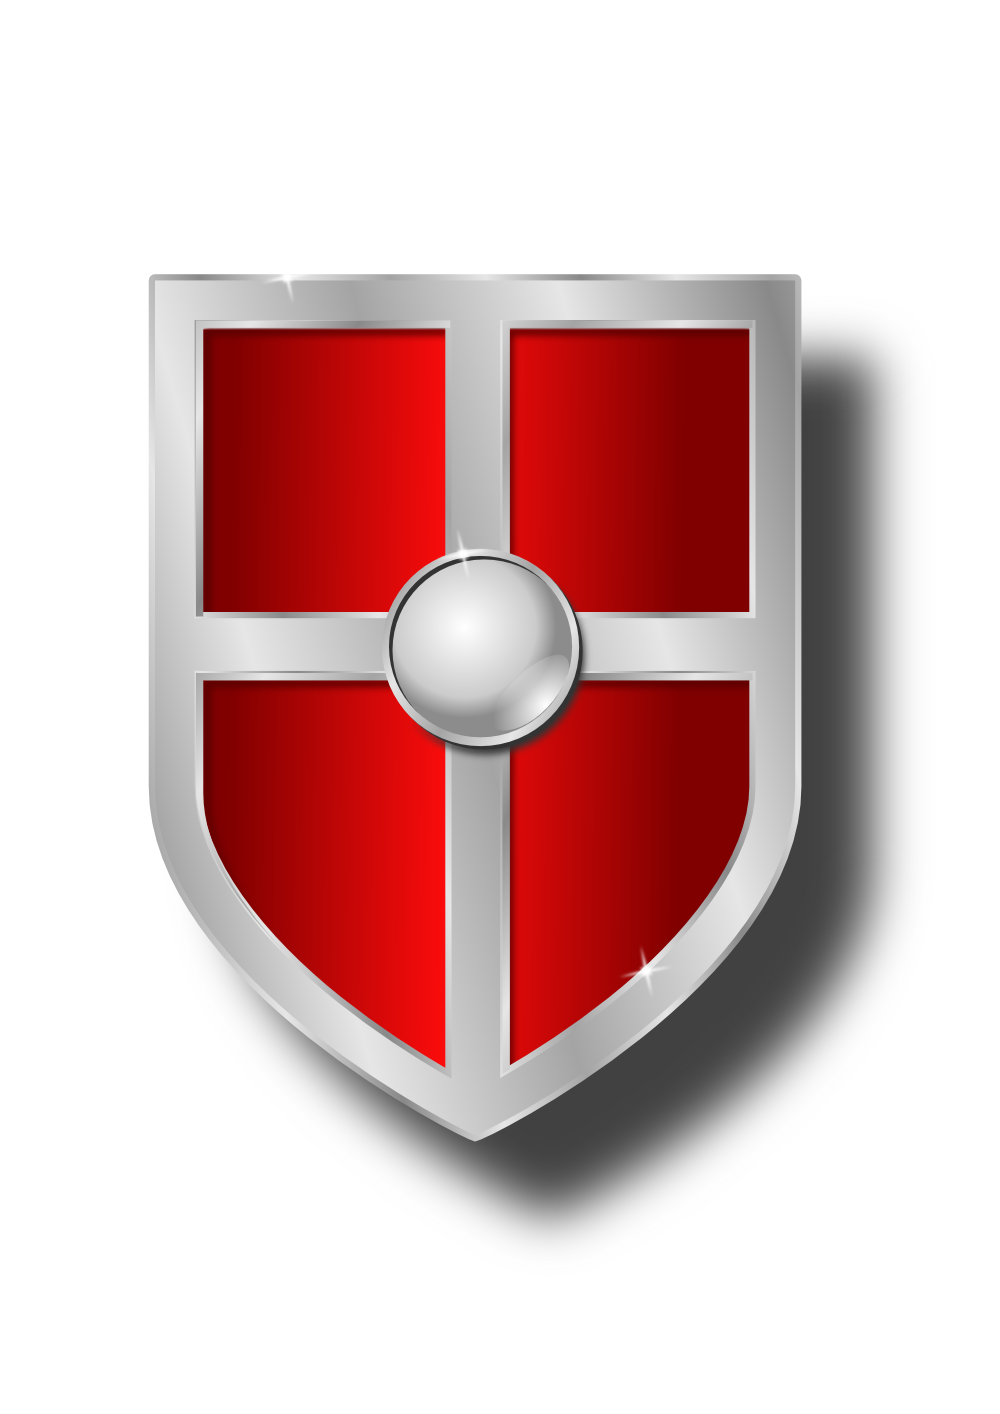 Knights Shield Clipart.